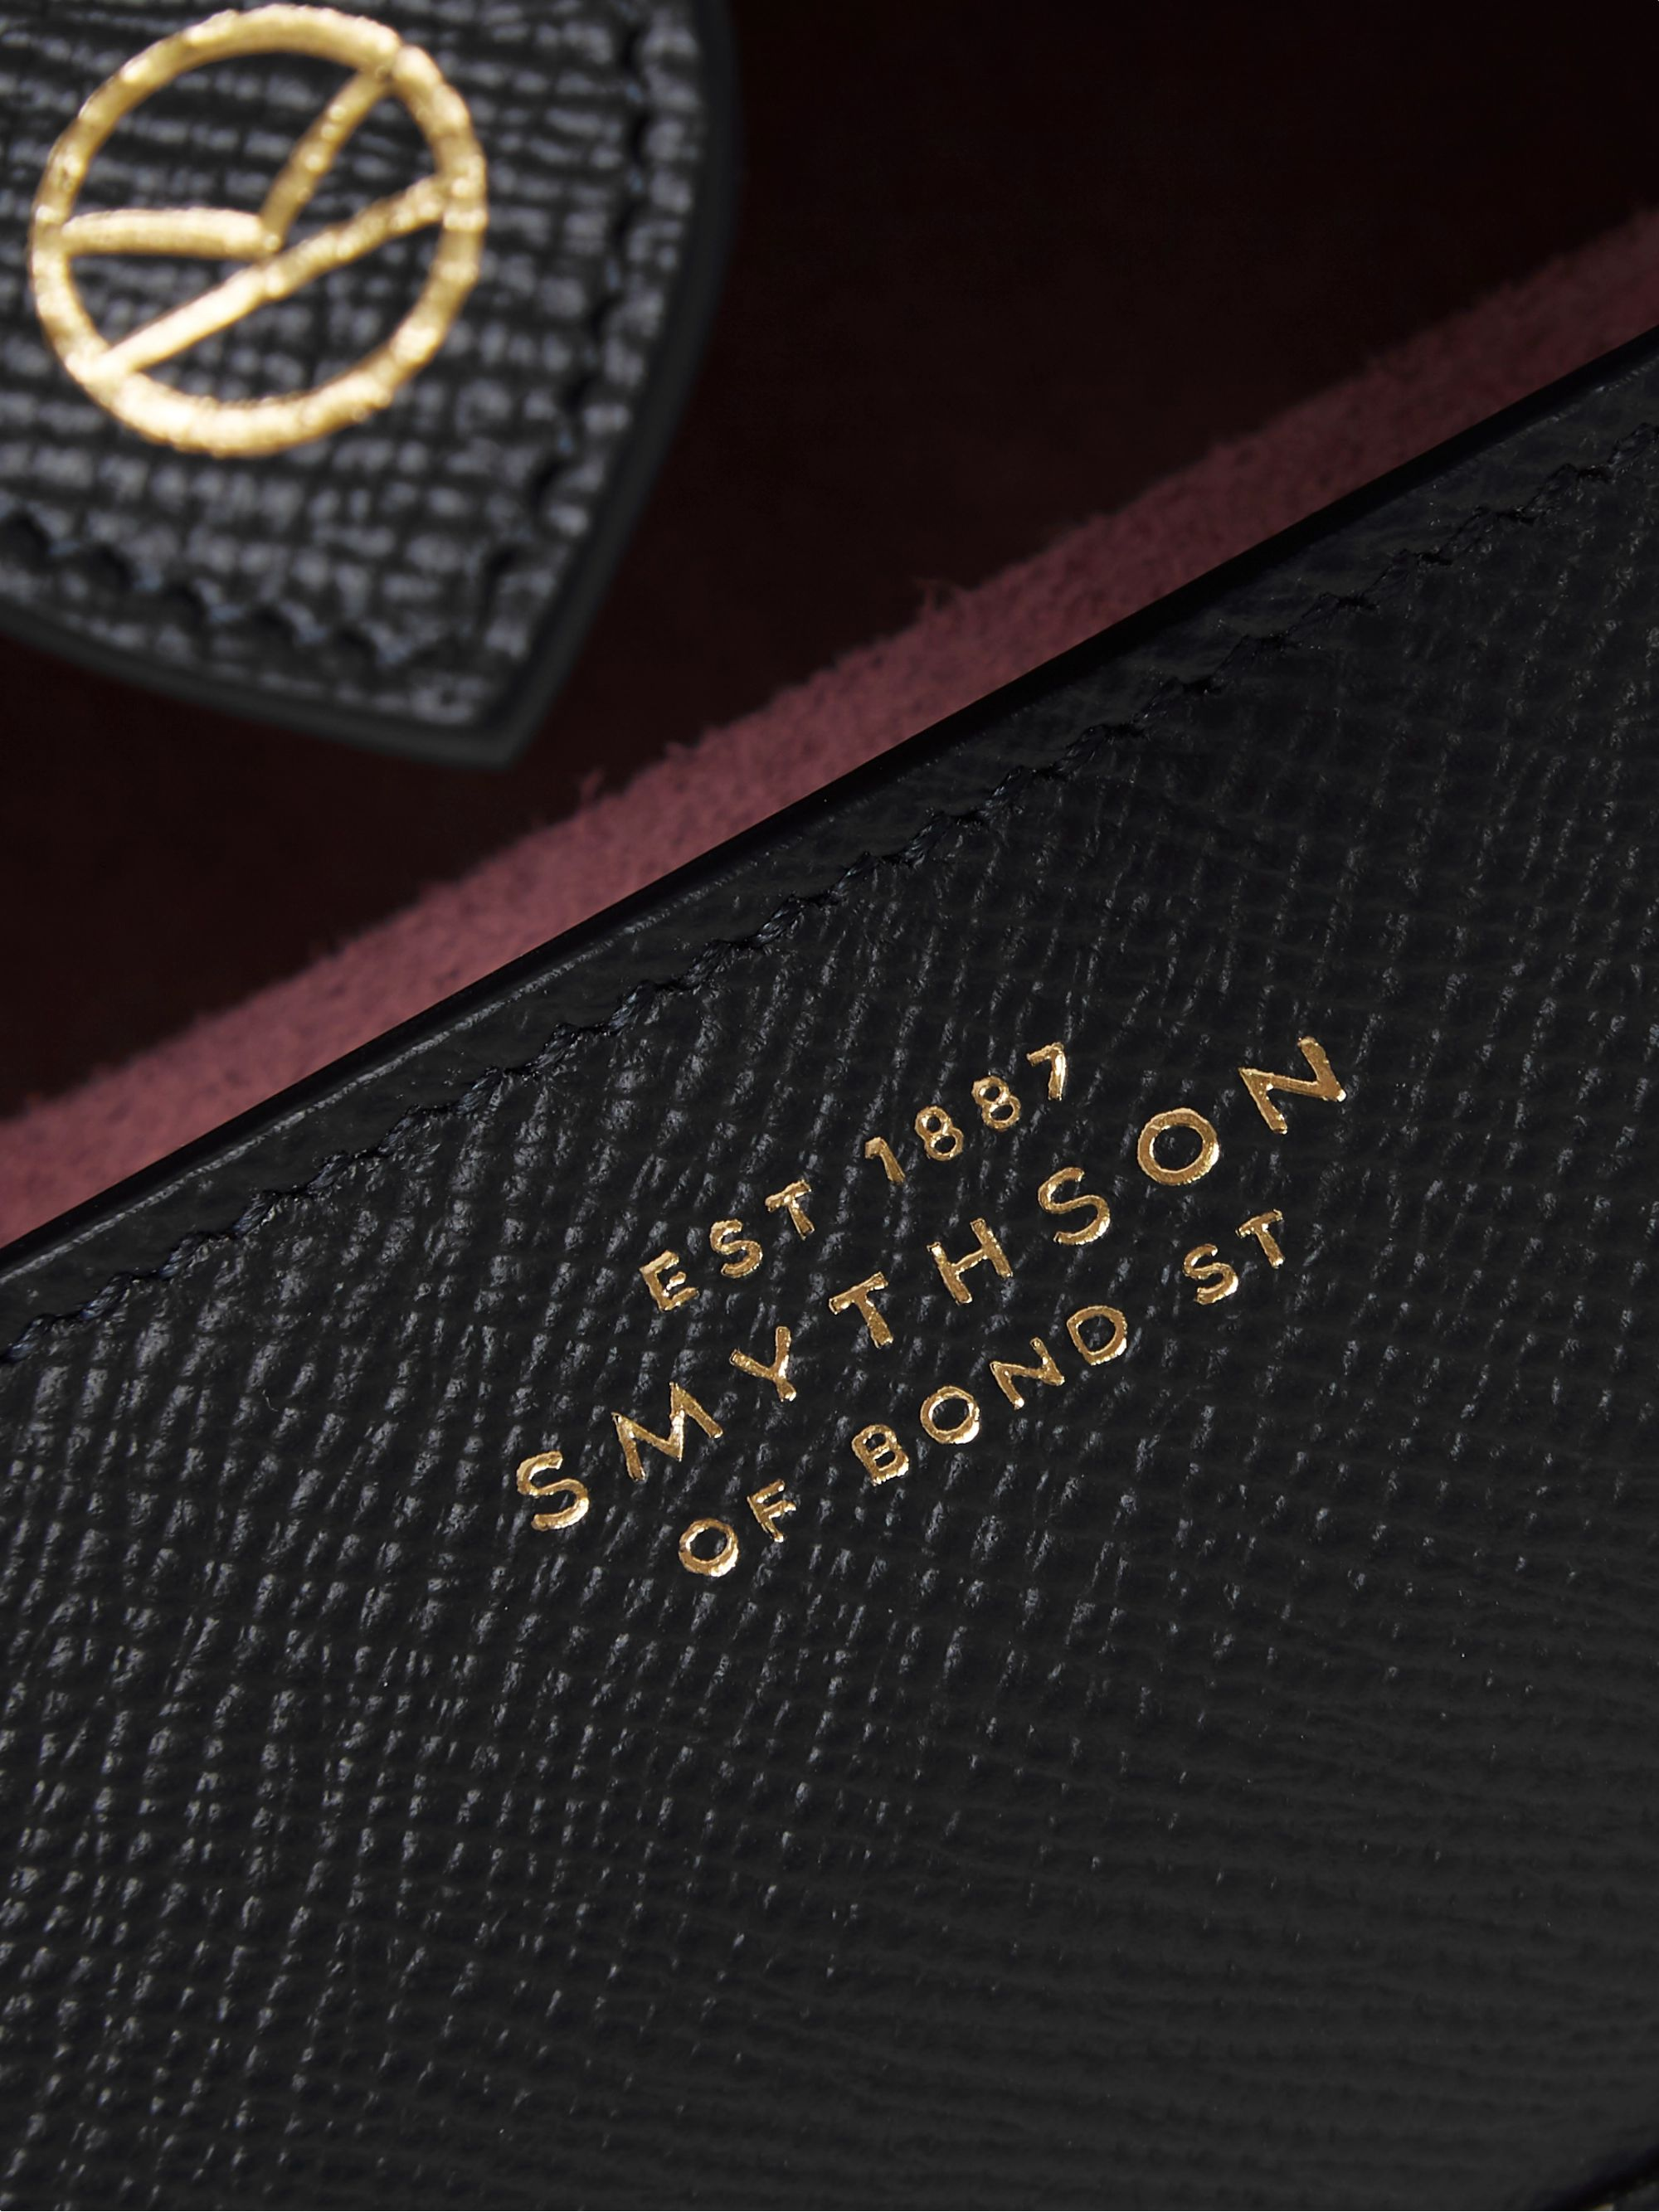 Kingsman + Smythson Cross-Grain Leather Watch Roll